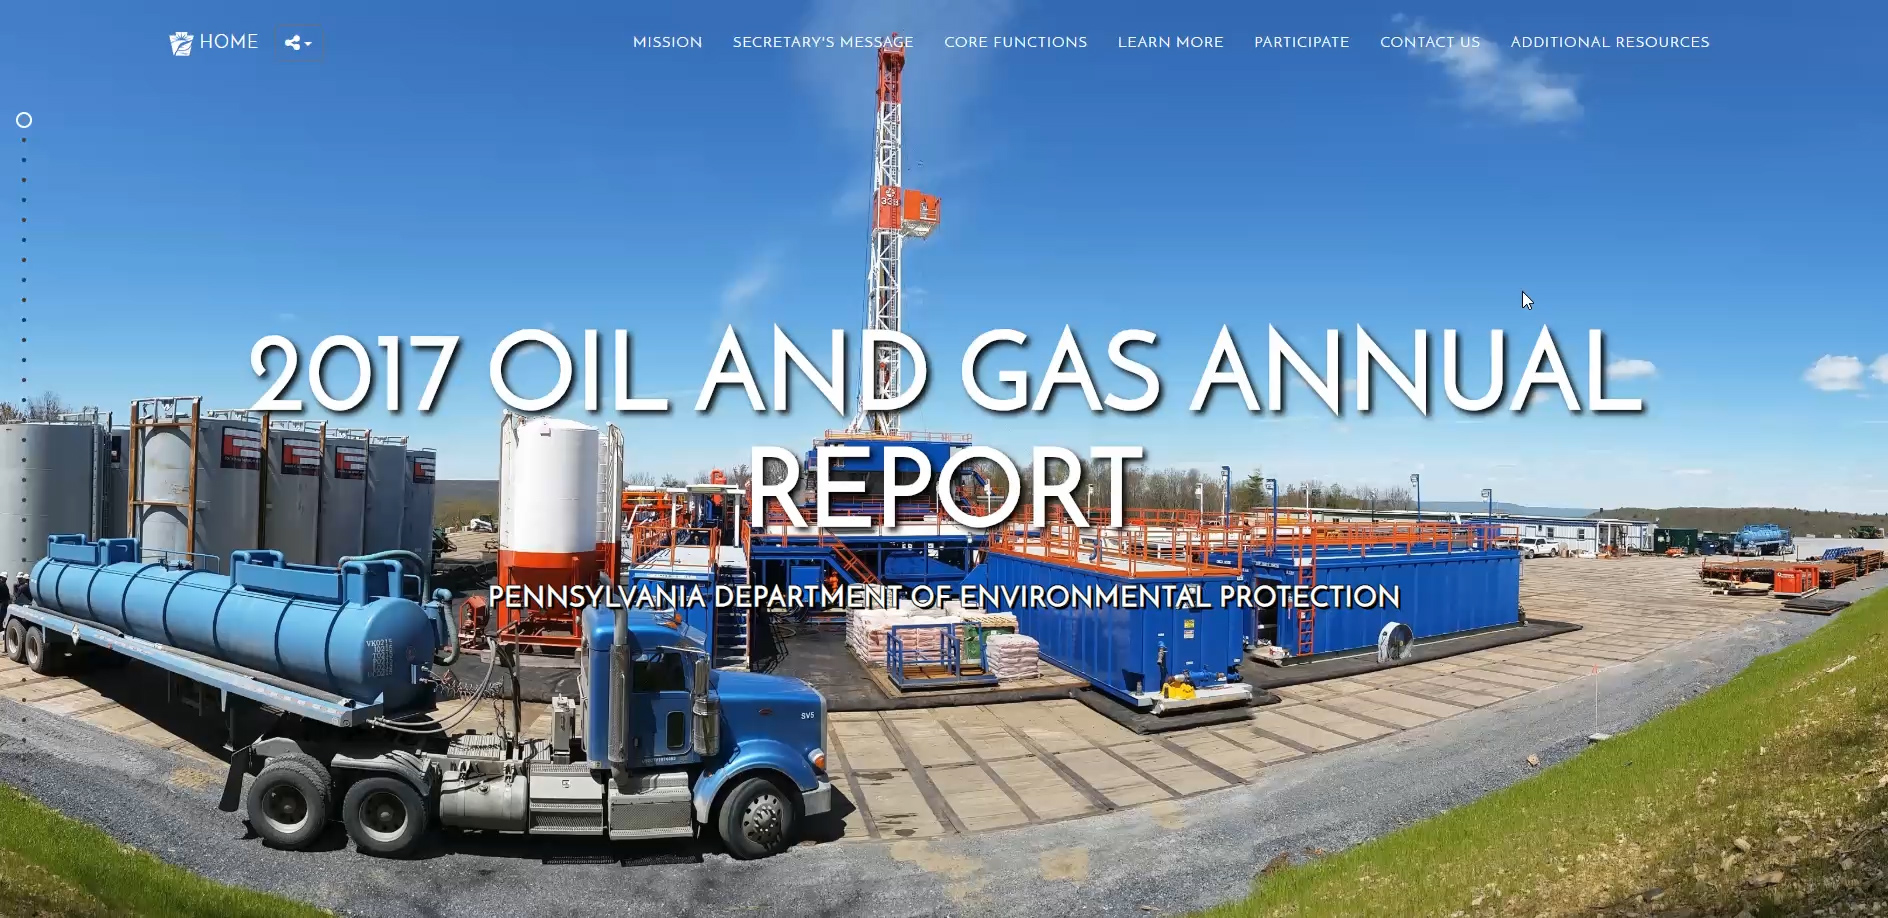 2016 Oil and Gas Annual Report